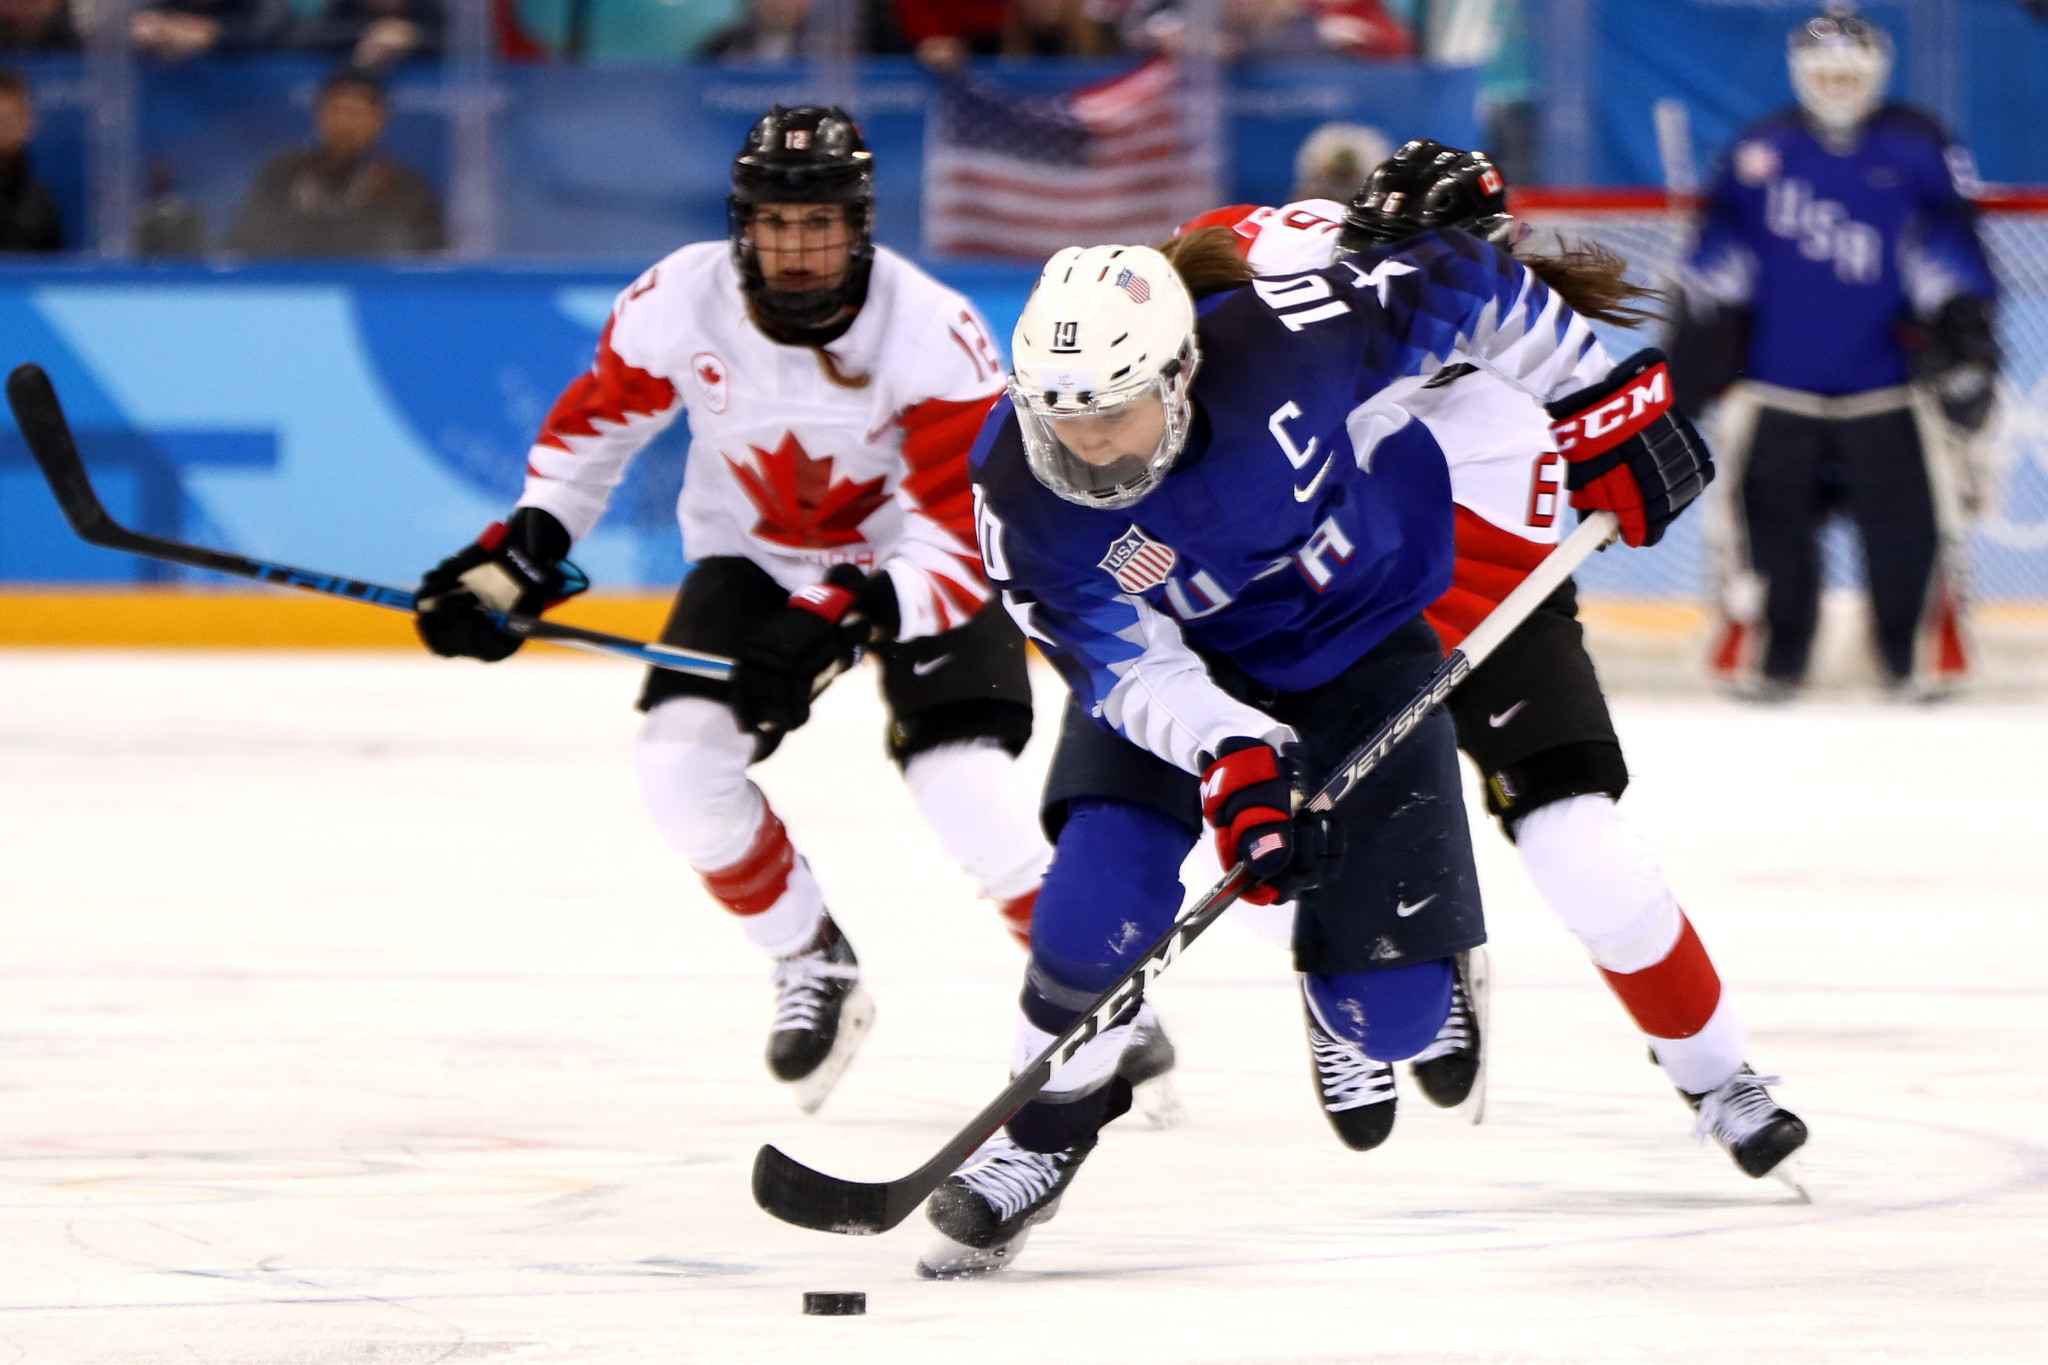 Meghan Duggan captained the American ice hockey team which won Olympic gold at Pyeongchang 2018 ©Getty Images